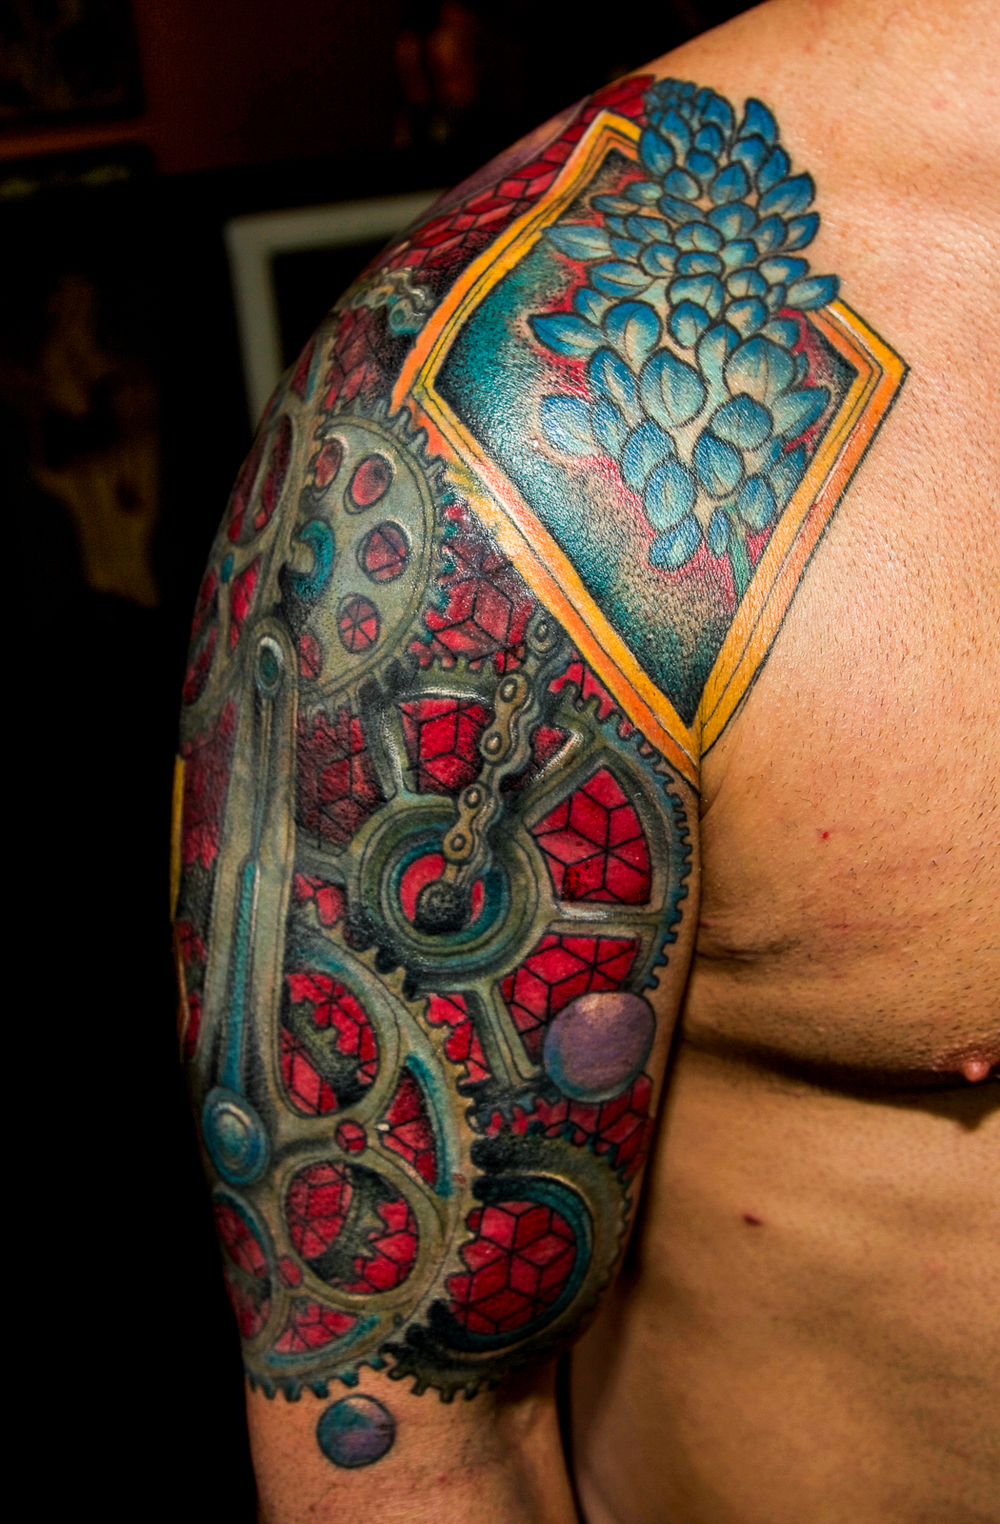 Bike Gears cover up 1 enrique bernal ejay tattoo.jpg